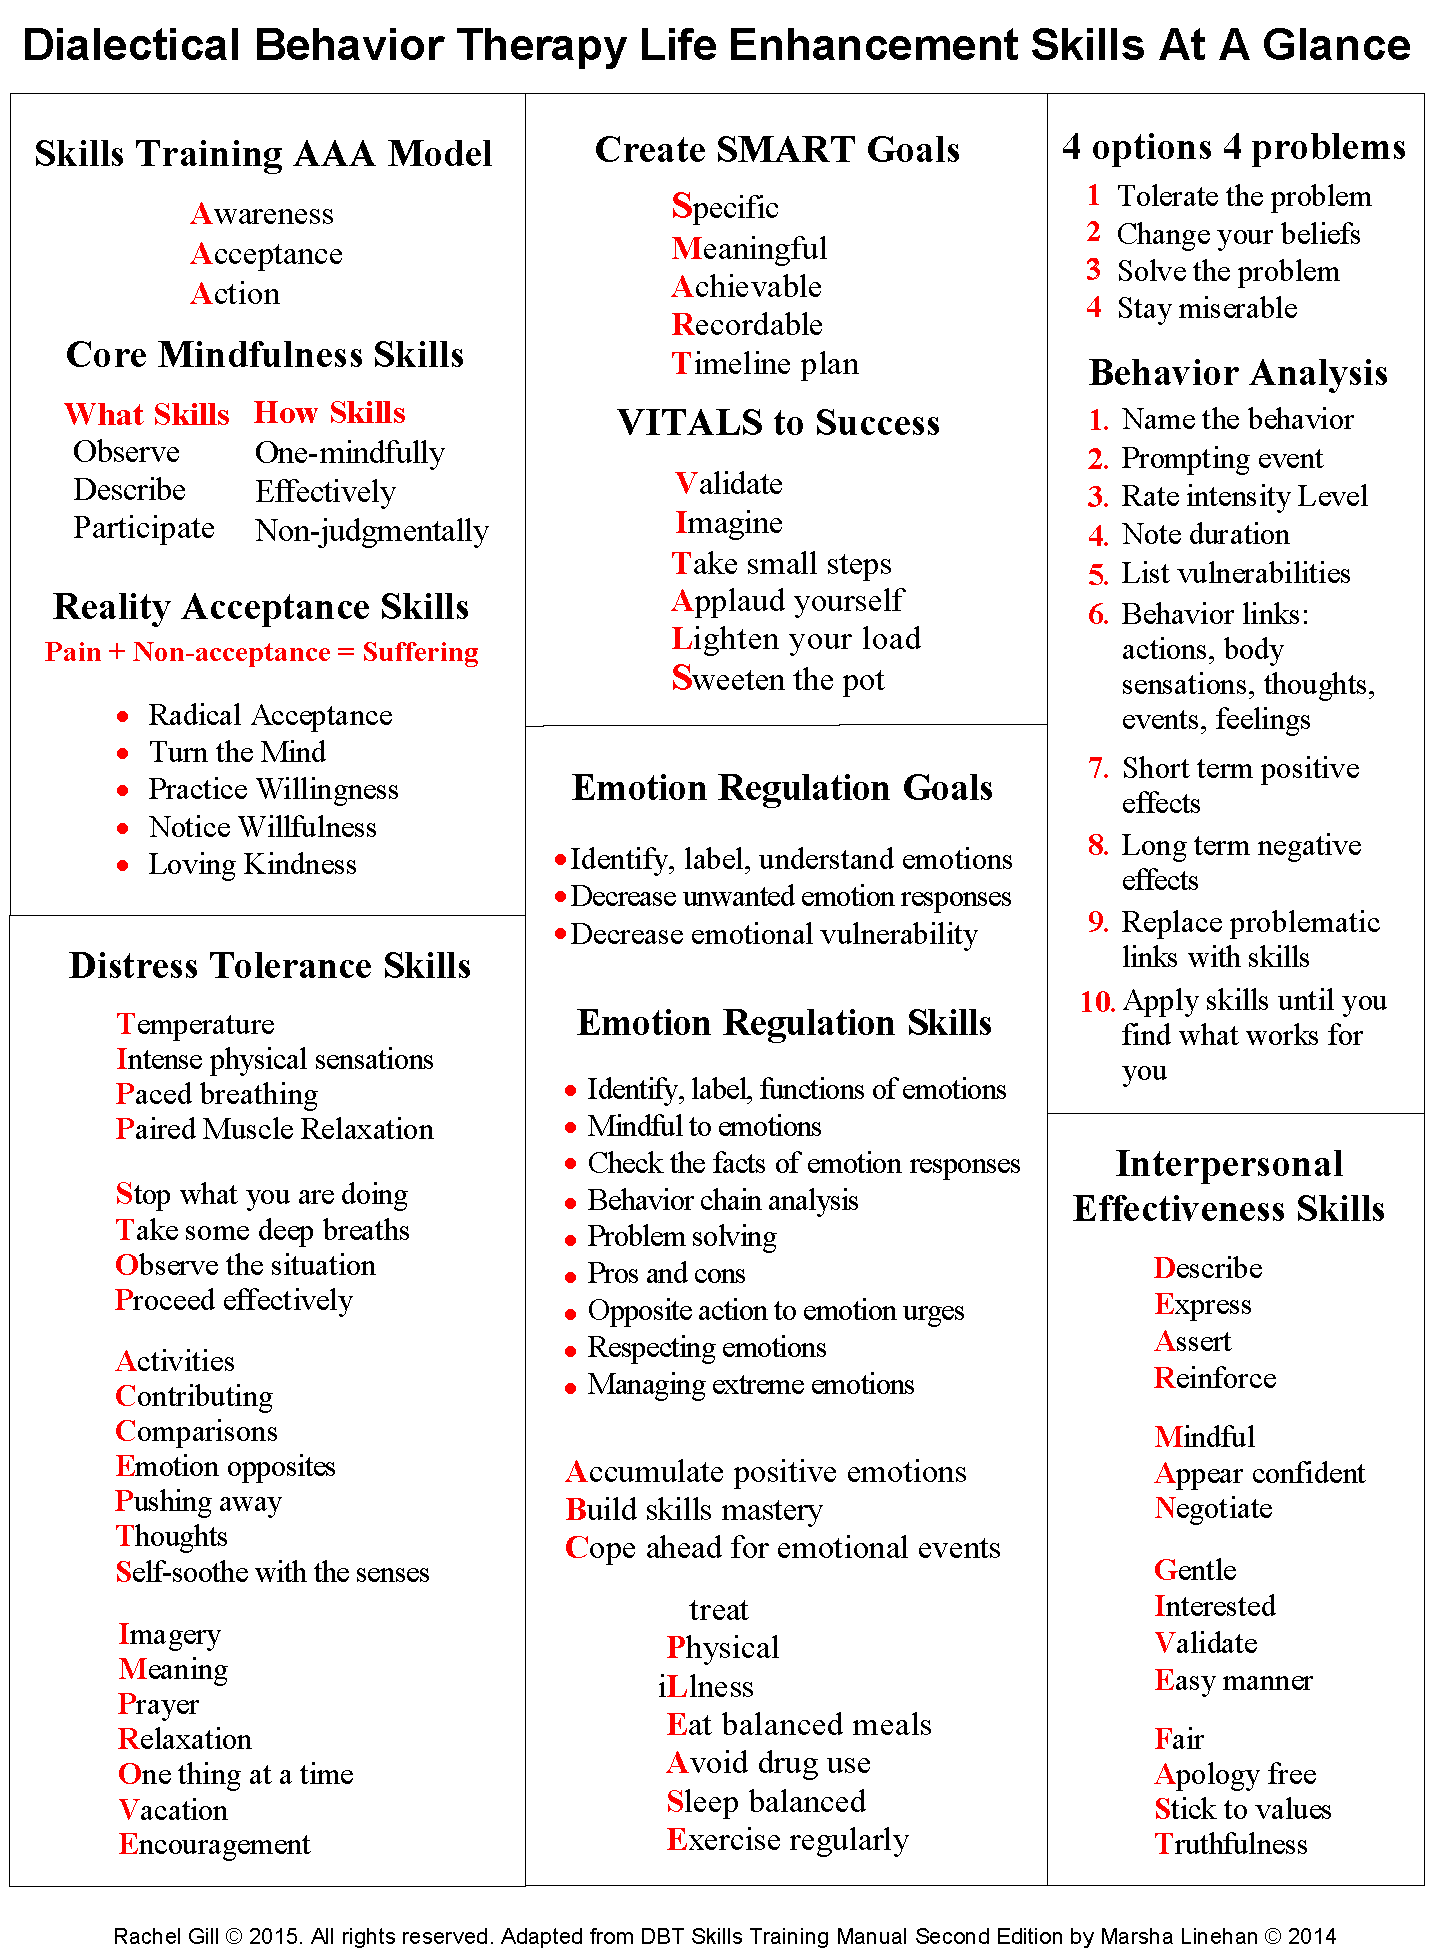 Dbt Skills Training Modules Handouts Worksheets Dbt Skills At A